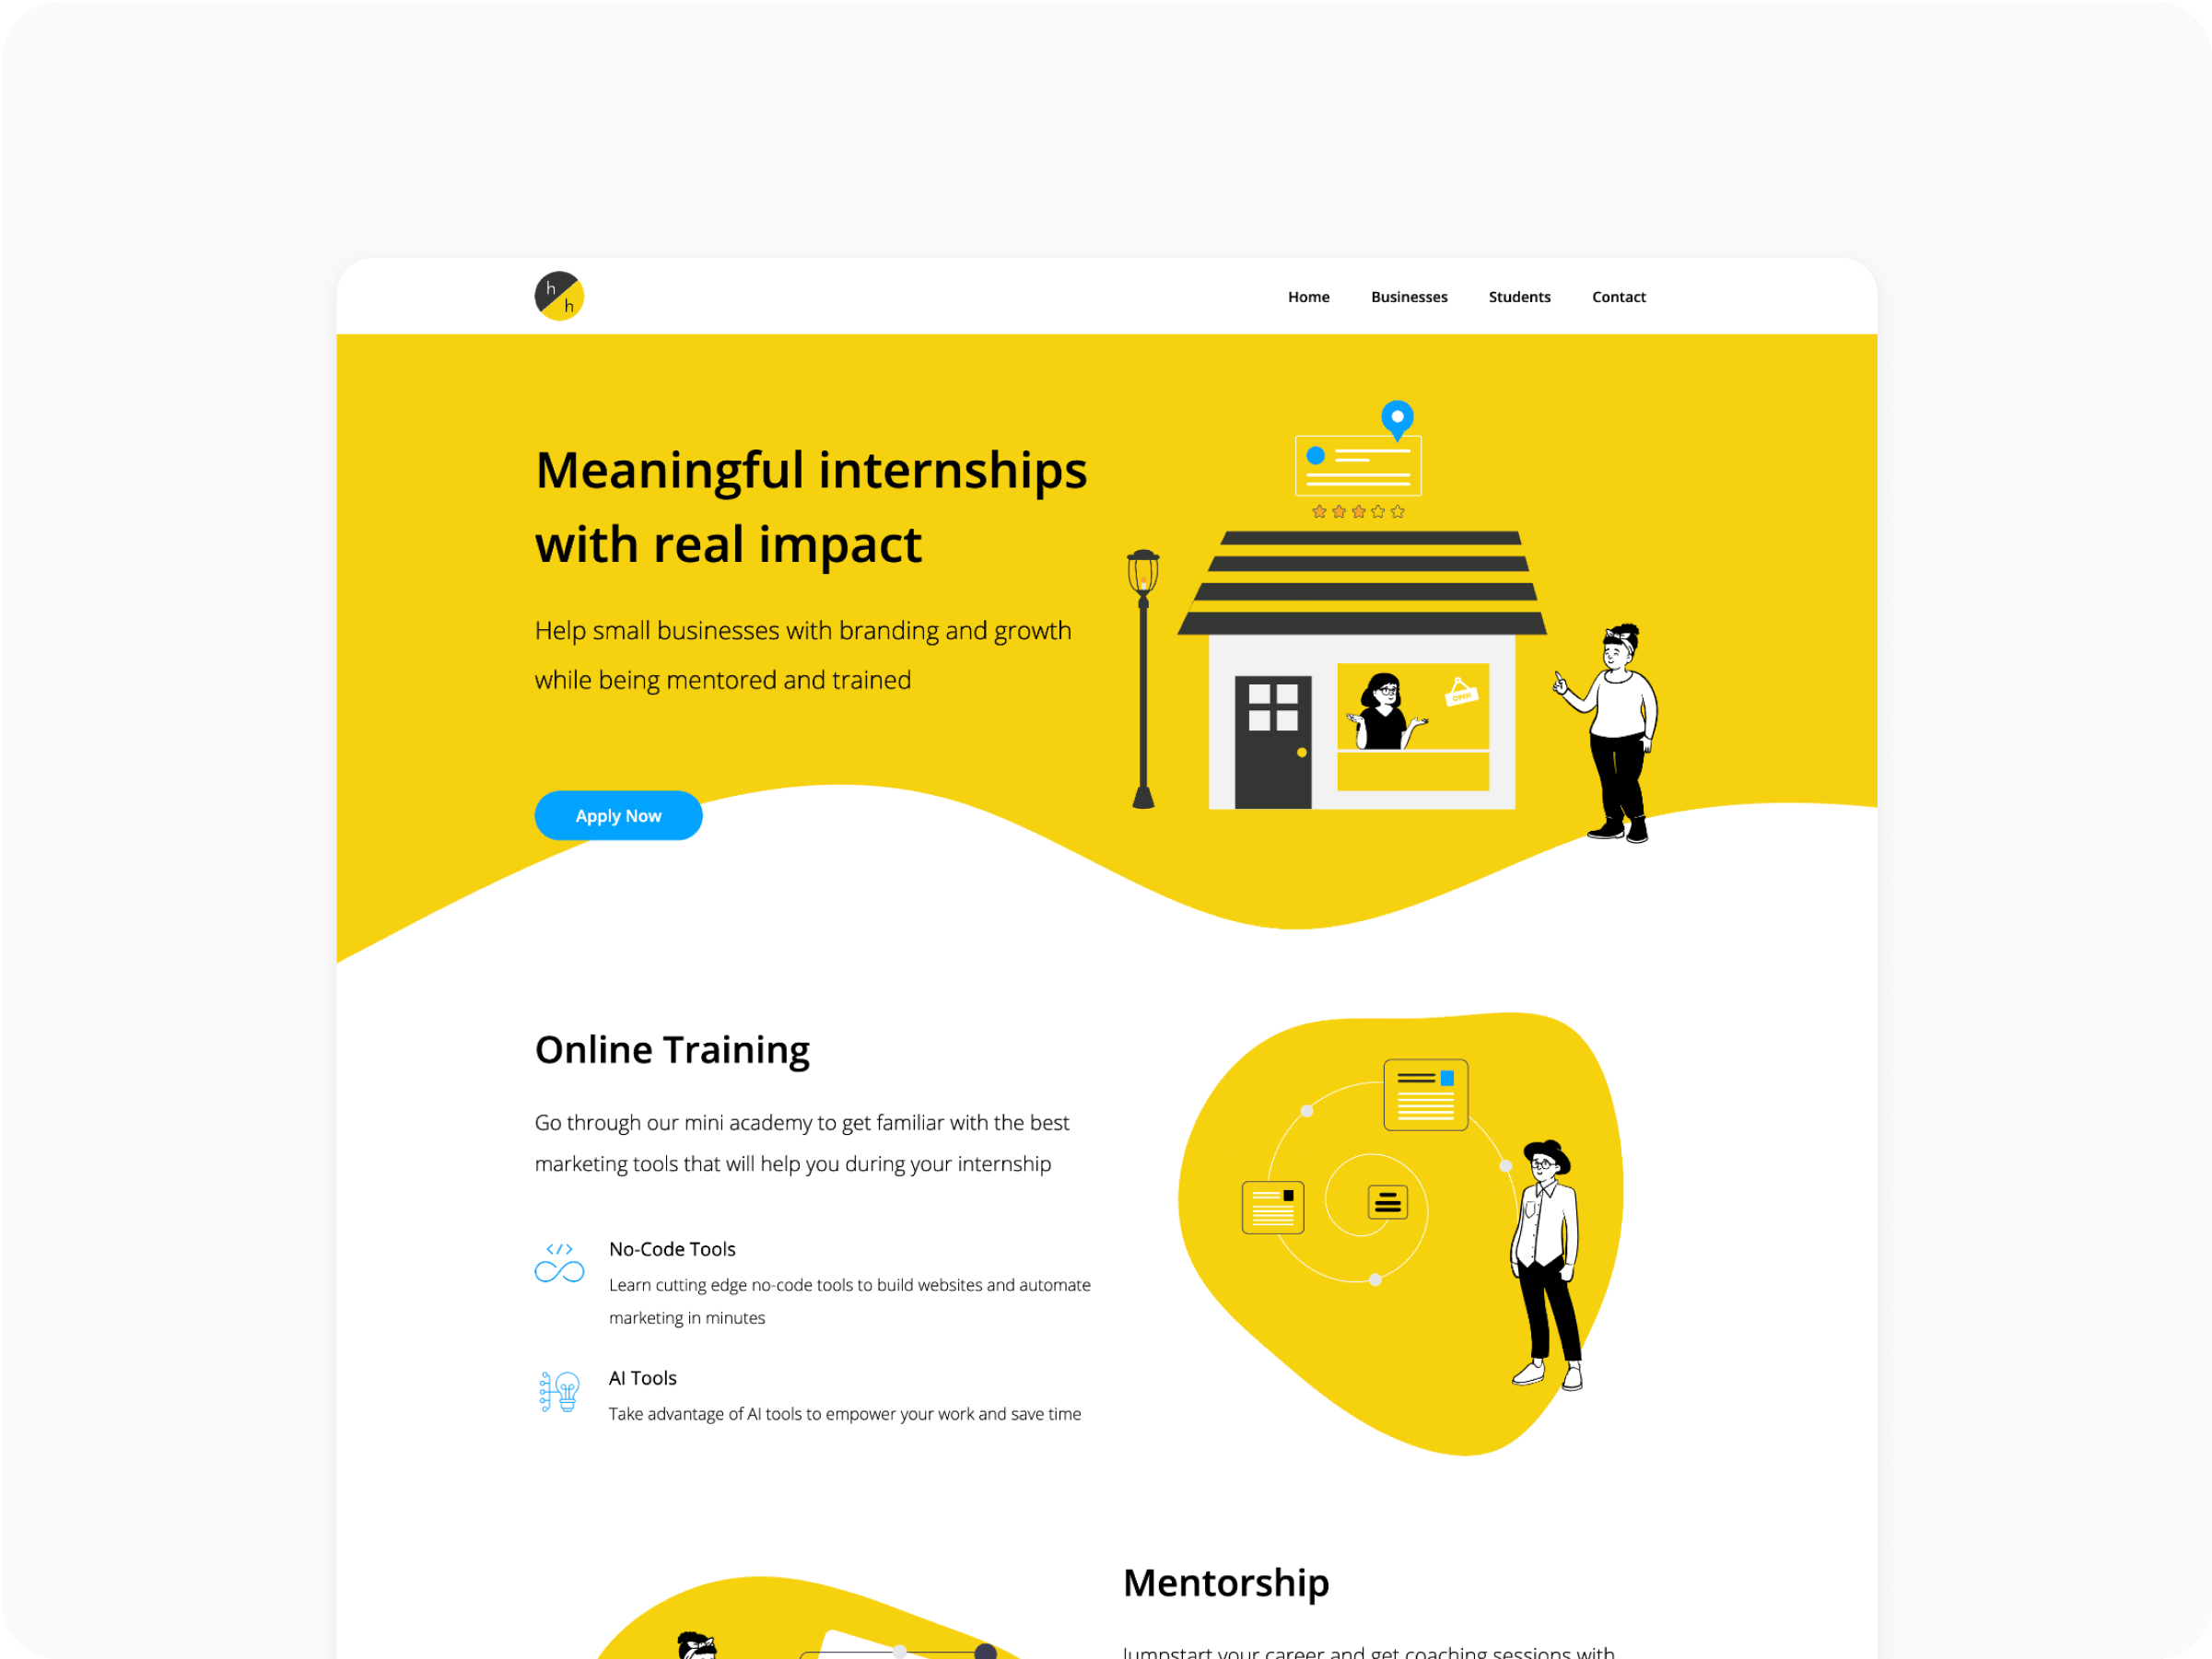 Our awesome features